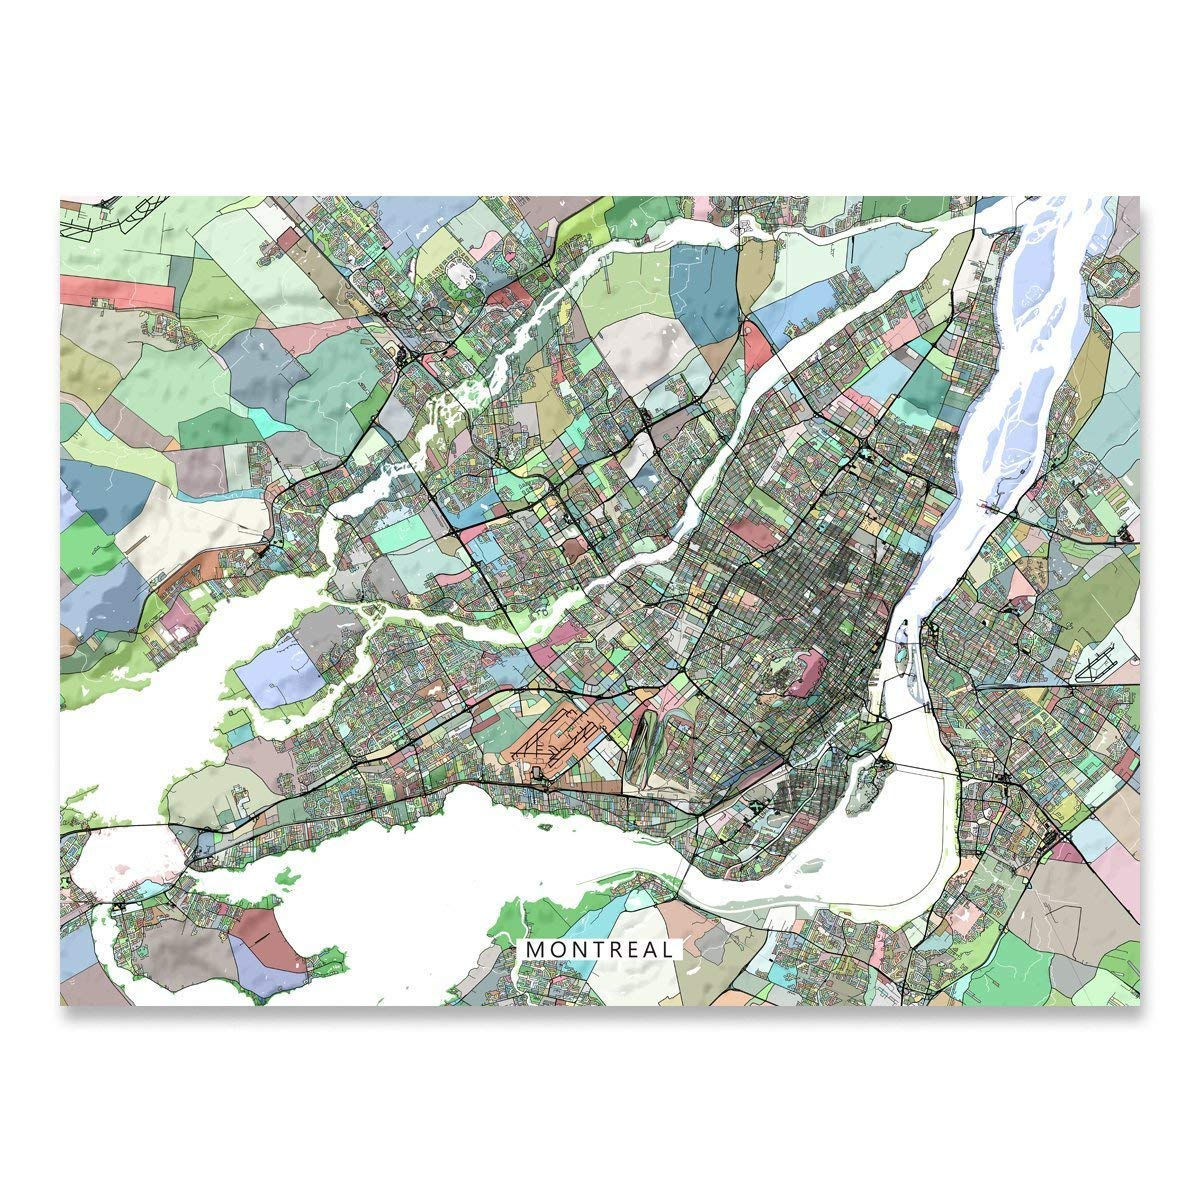 Montreal Map Art Print, Quebec Canada, City Street Wall Poster ... on